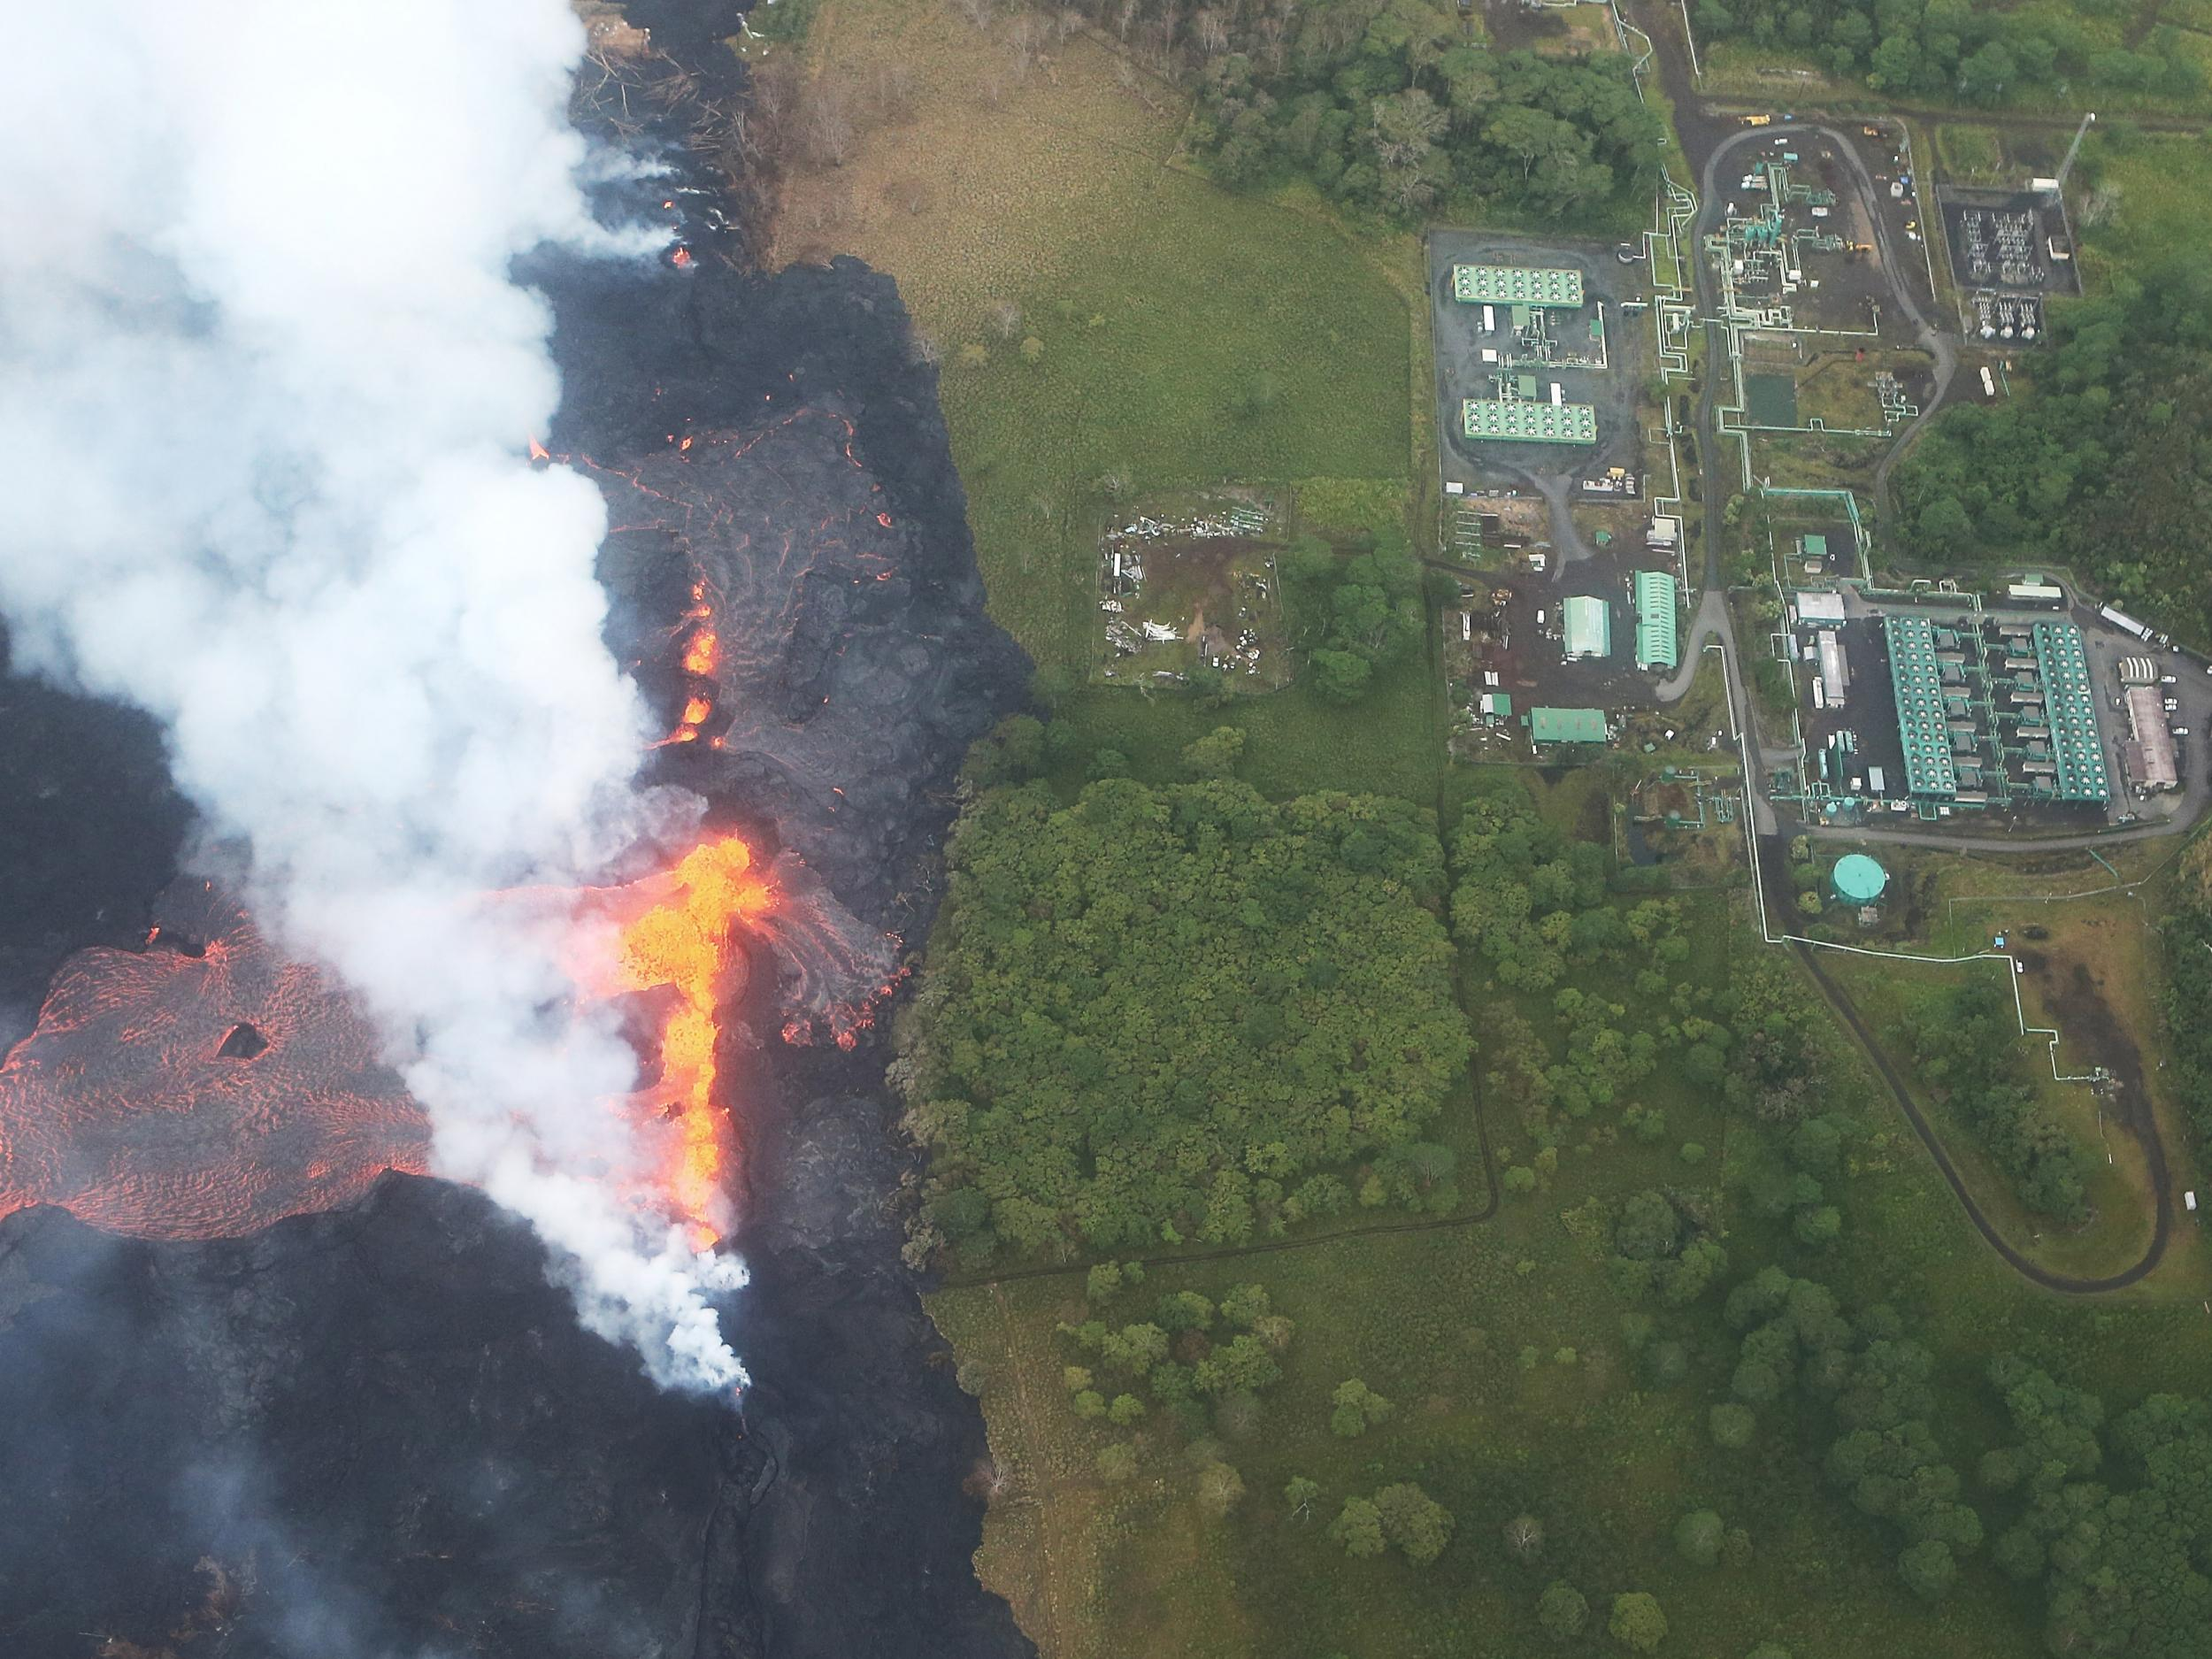 Hawaii volcano latest: Molten lava flows onto power plant site amid fears over deadly gases